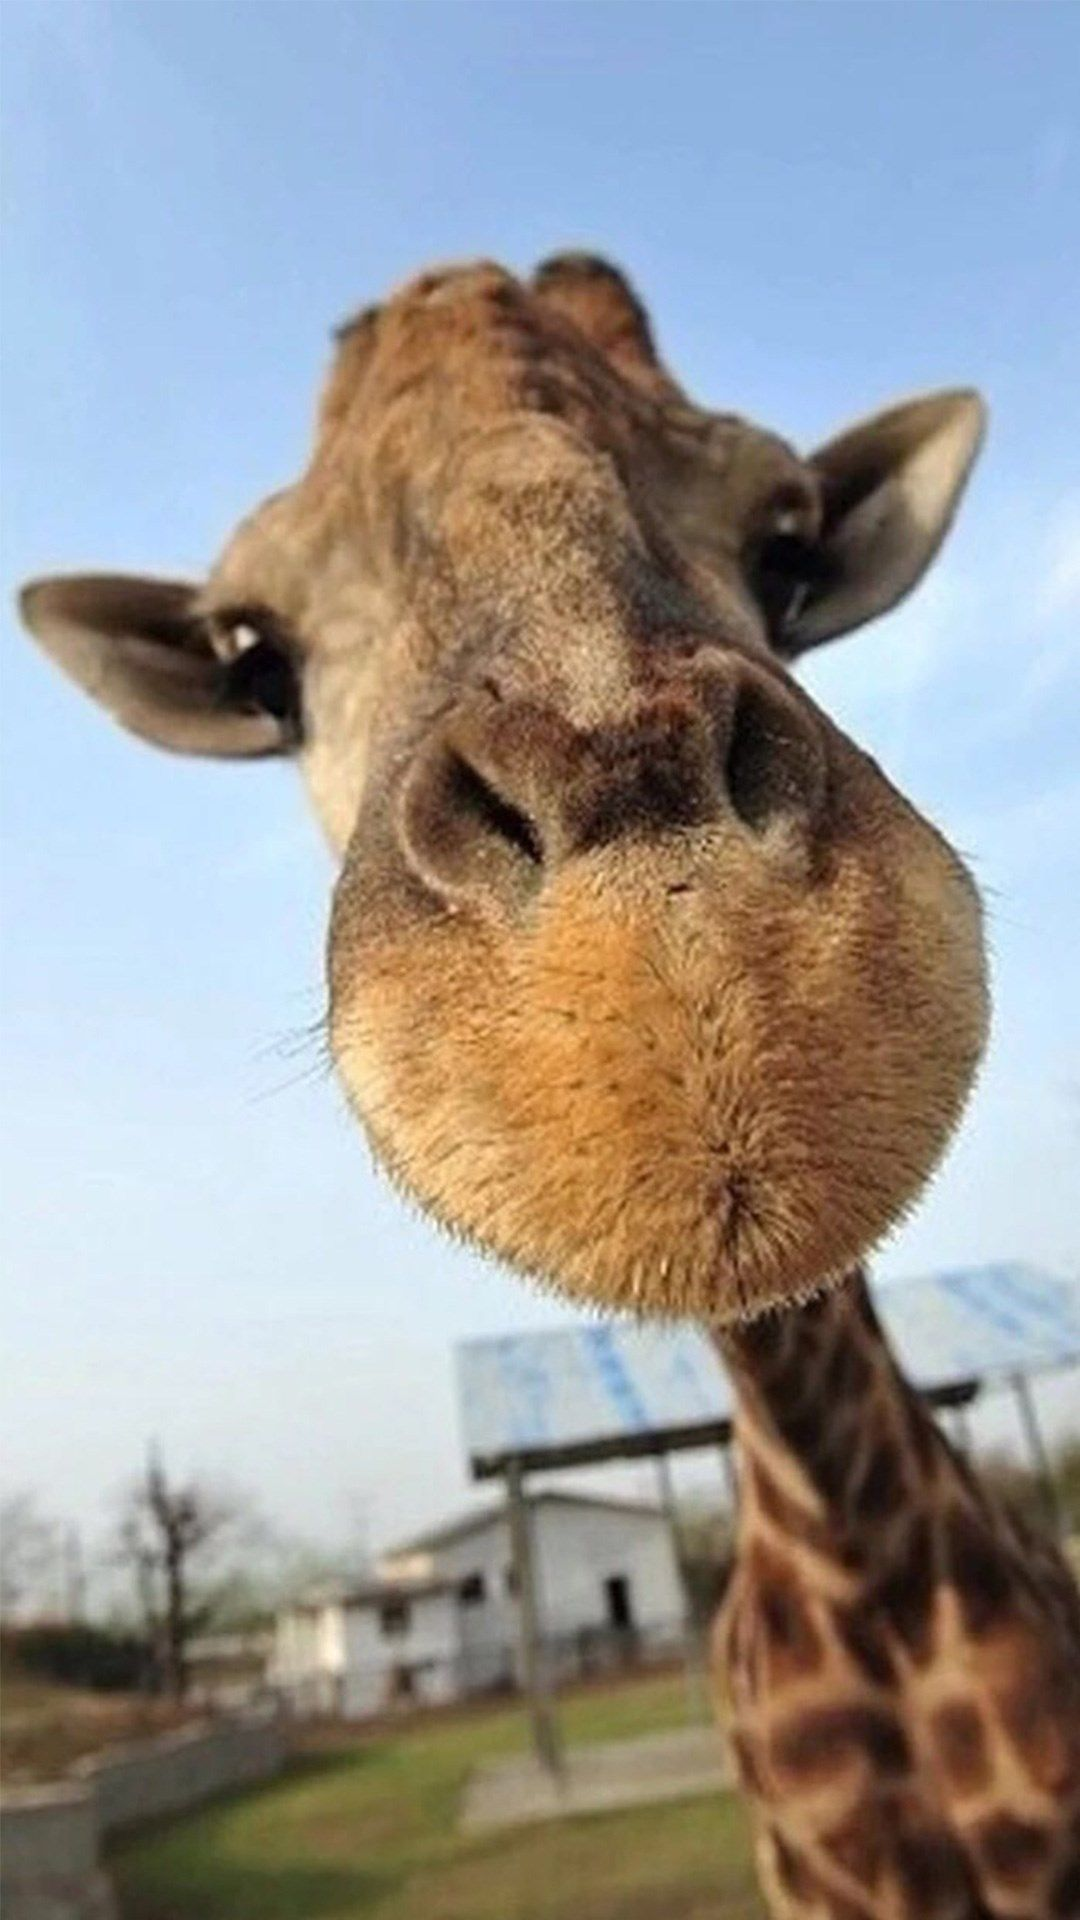 Cute Funny Animals Wallpapers High Quality Resolution On Wallpaper 1080p Hd Funny Giraffe Pictures Giraffe Pictures Cute Funny Animals